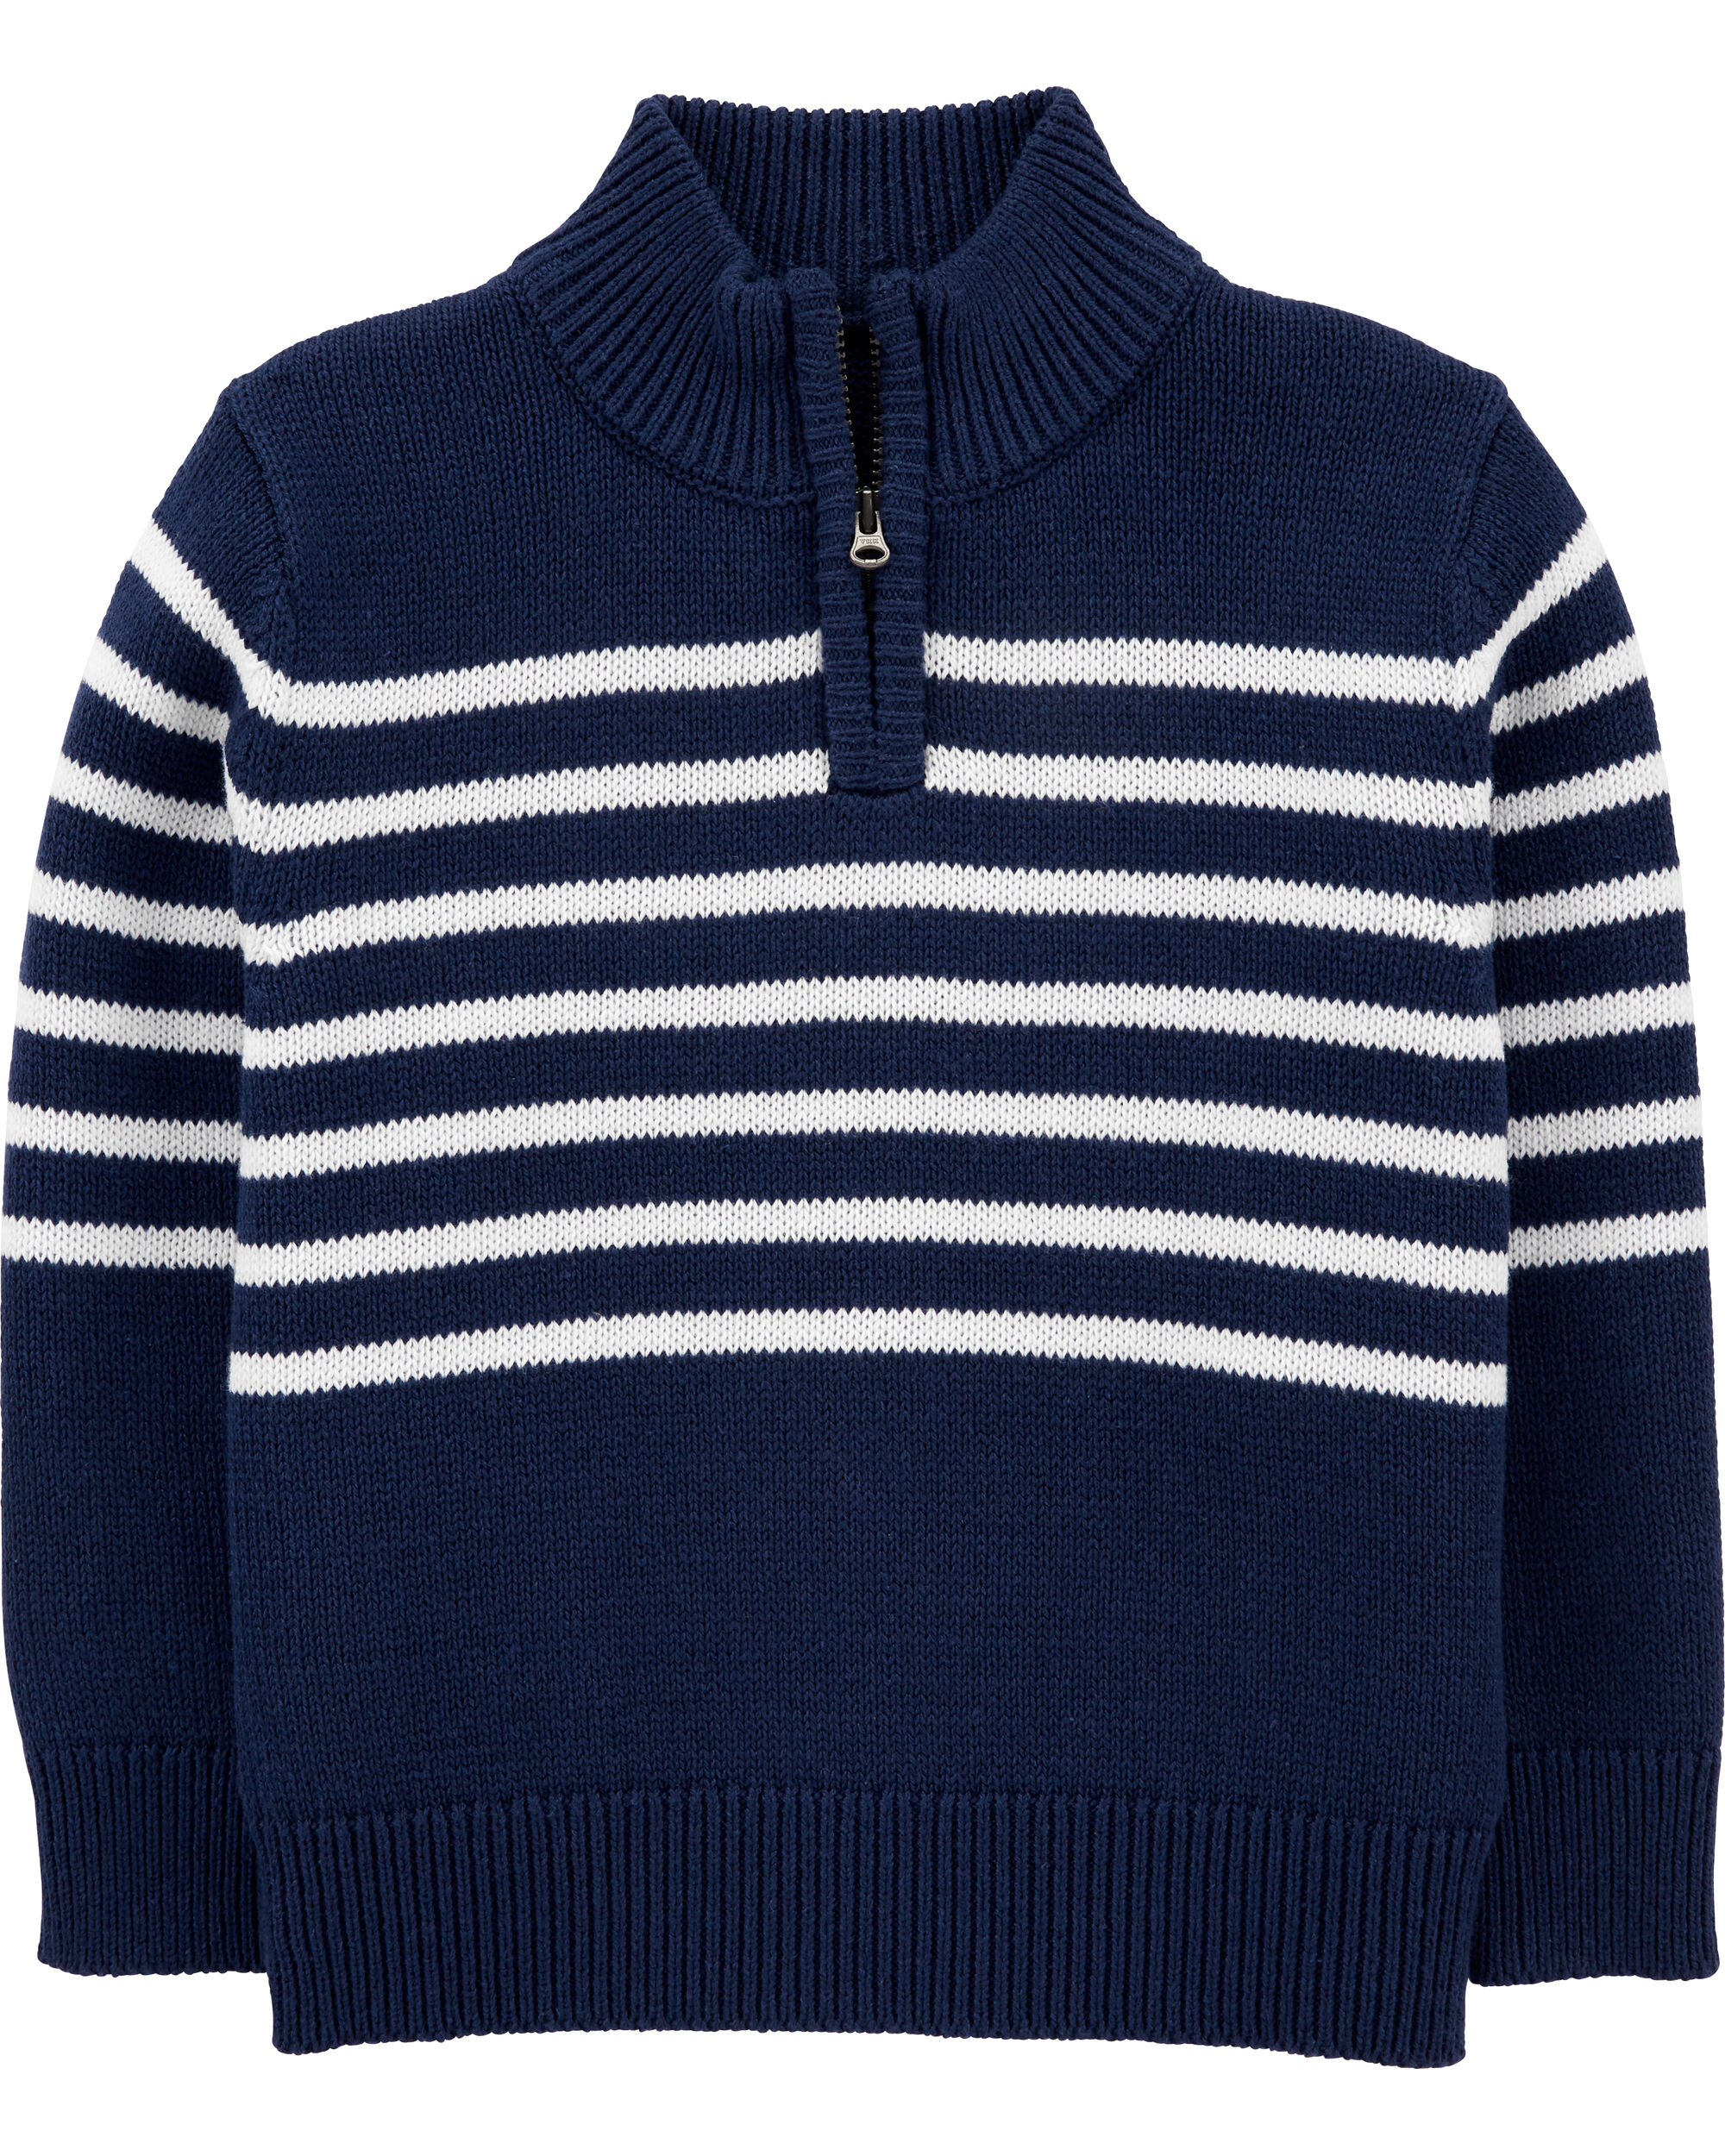 Half-Zip Knit Striped Pullover